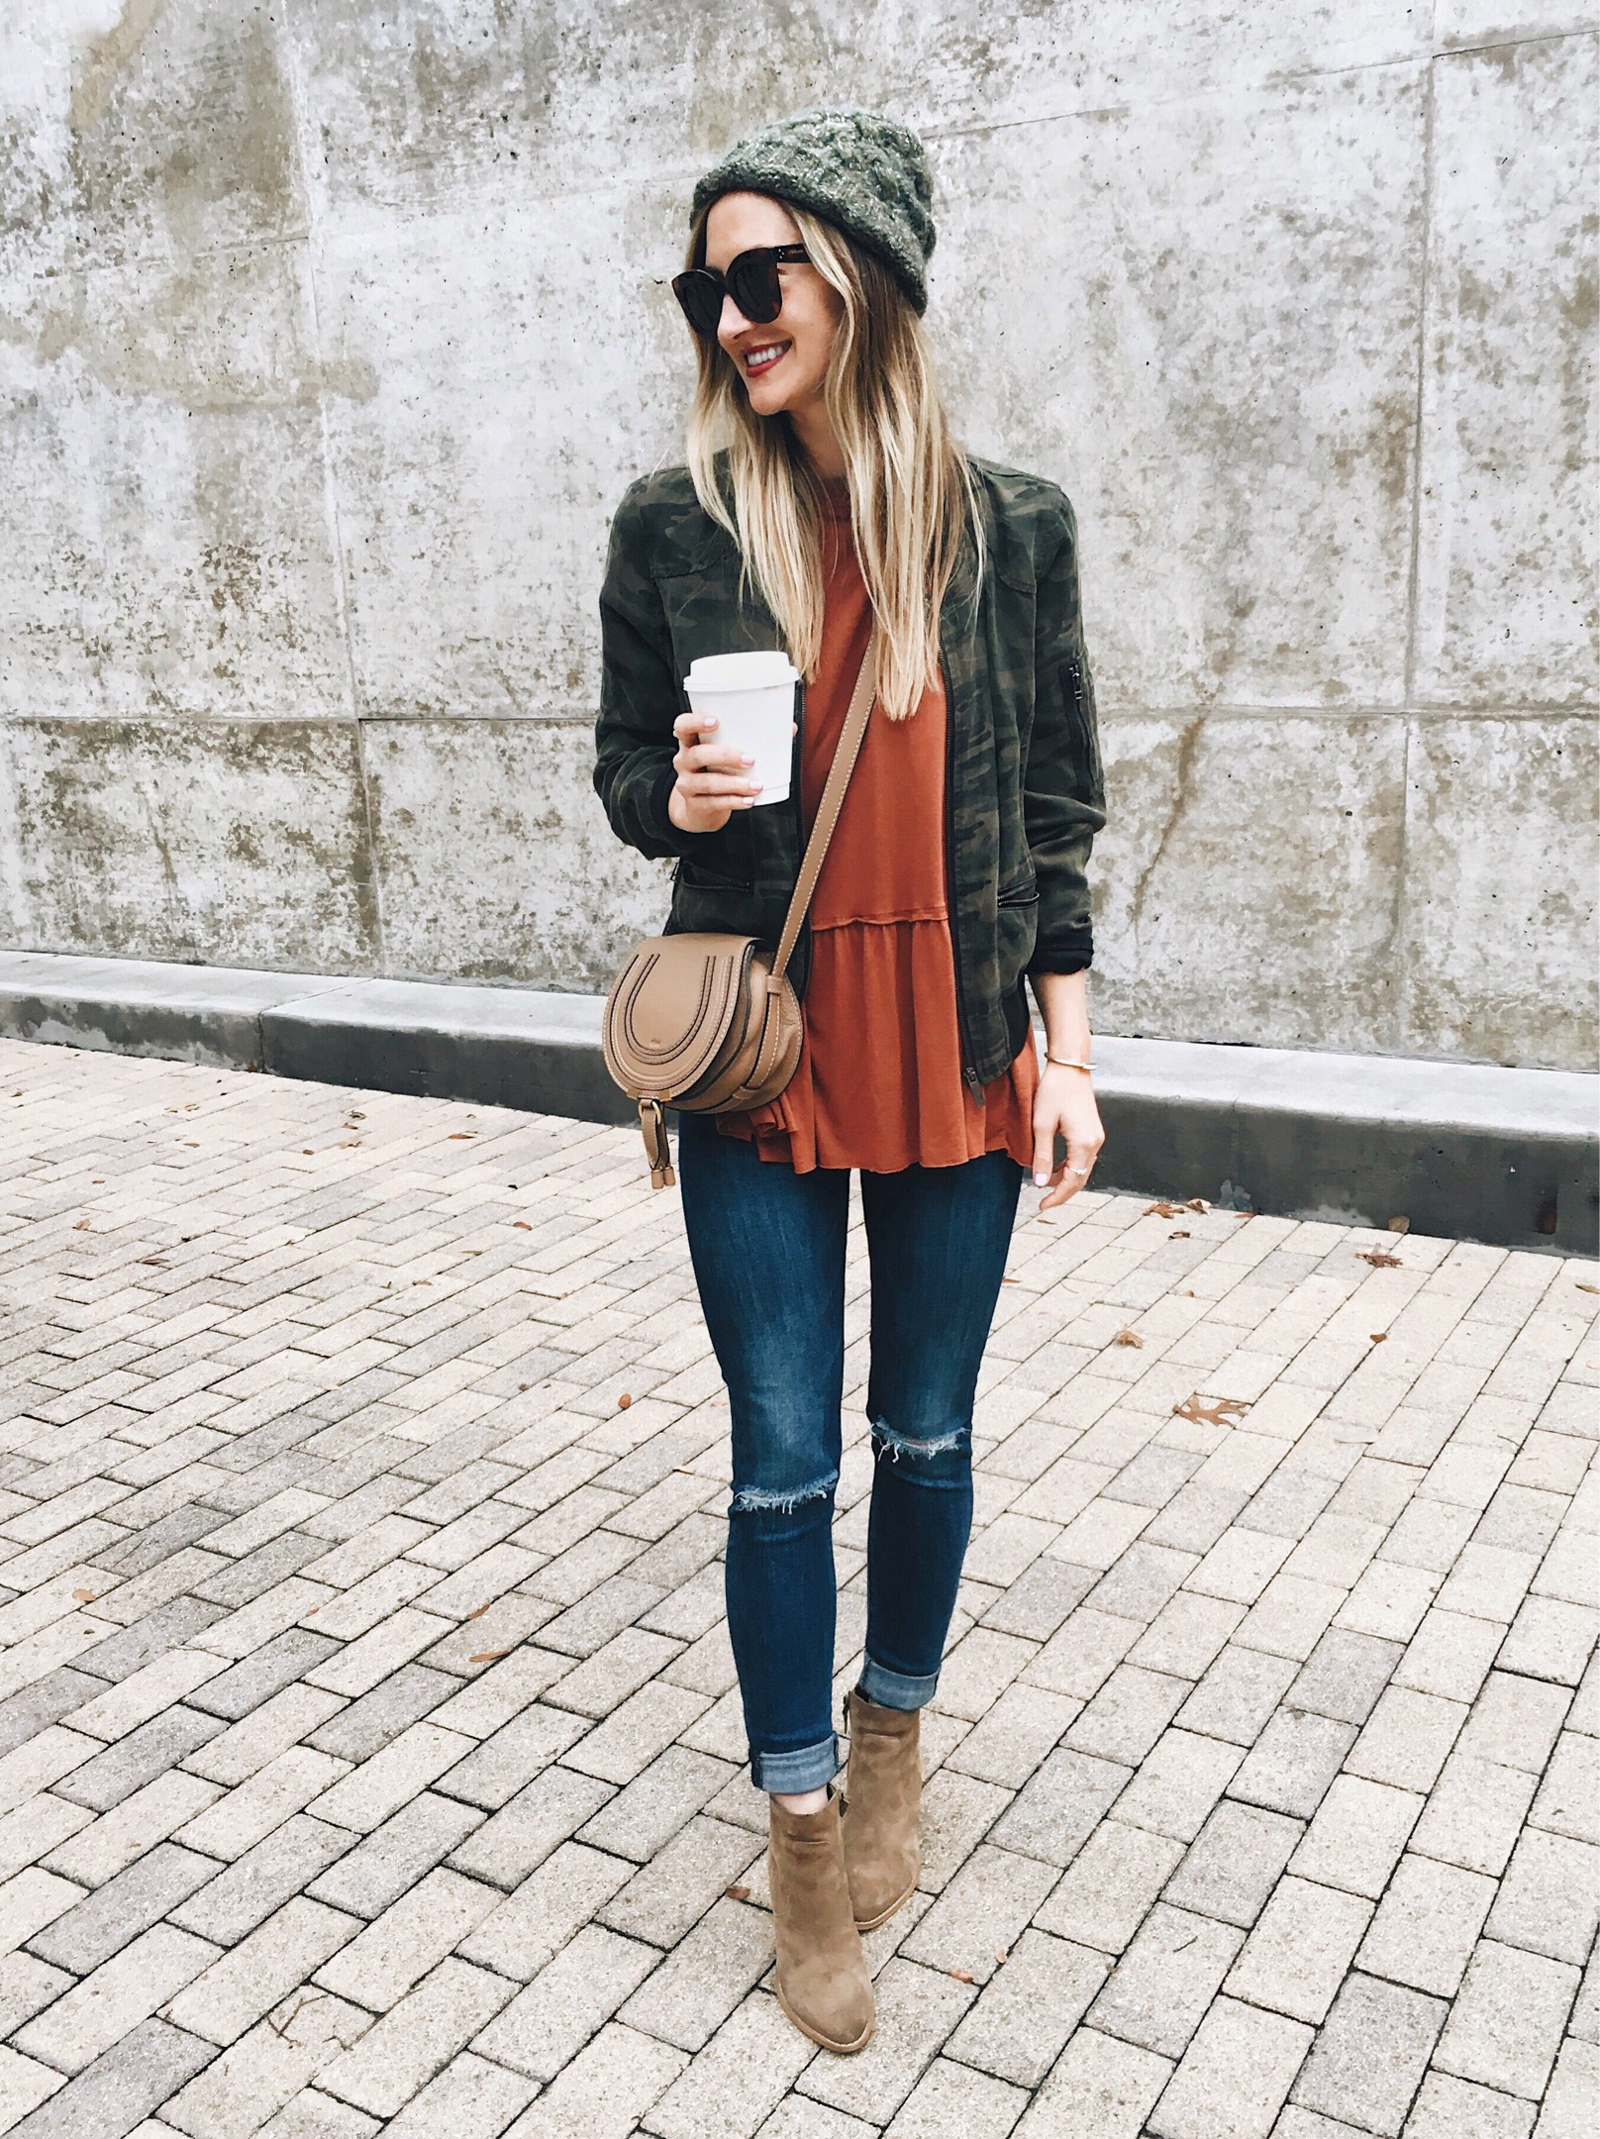 Winter Outfit Instagram